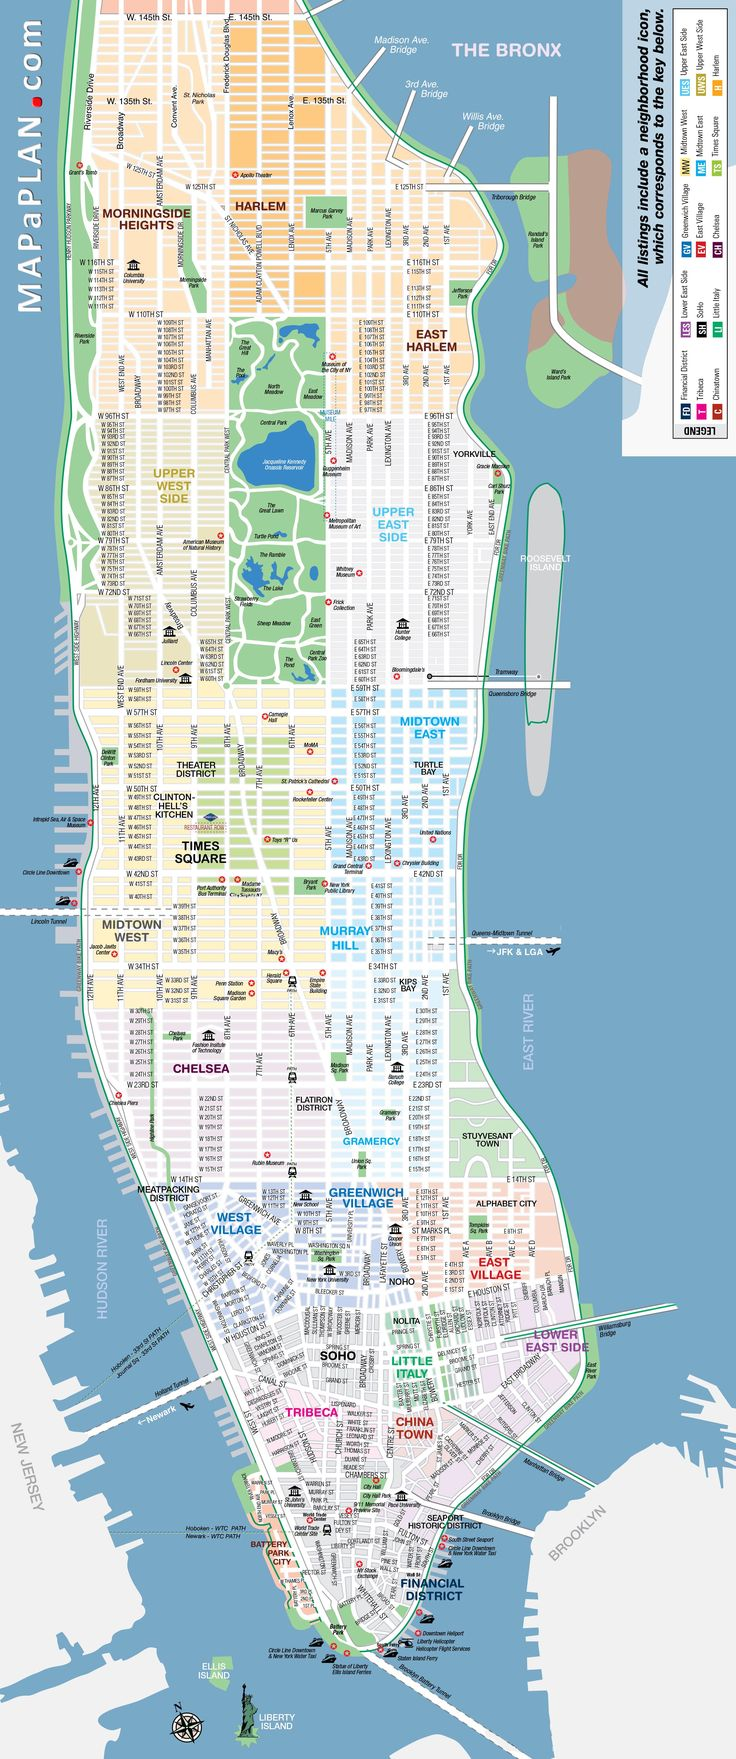 manhattan-streets-and-avenues-must-see-places-new-york-top-tourist-attractions-map